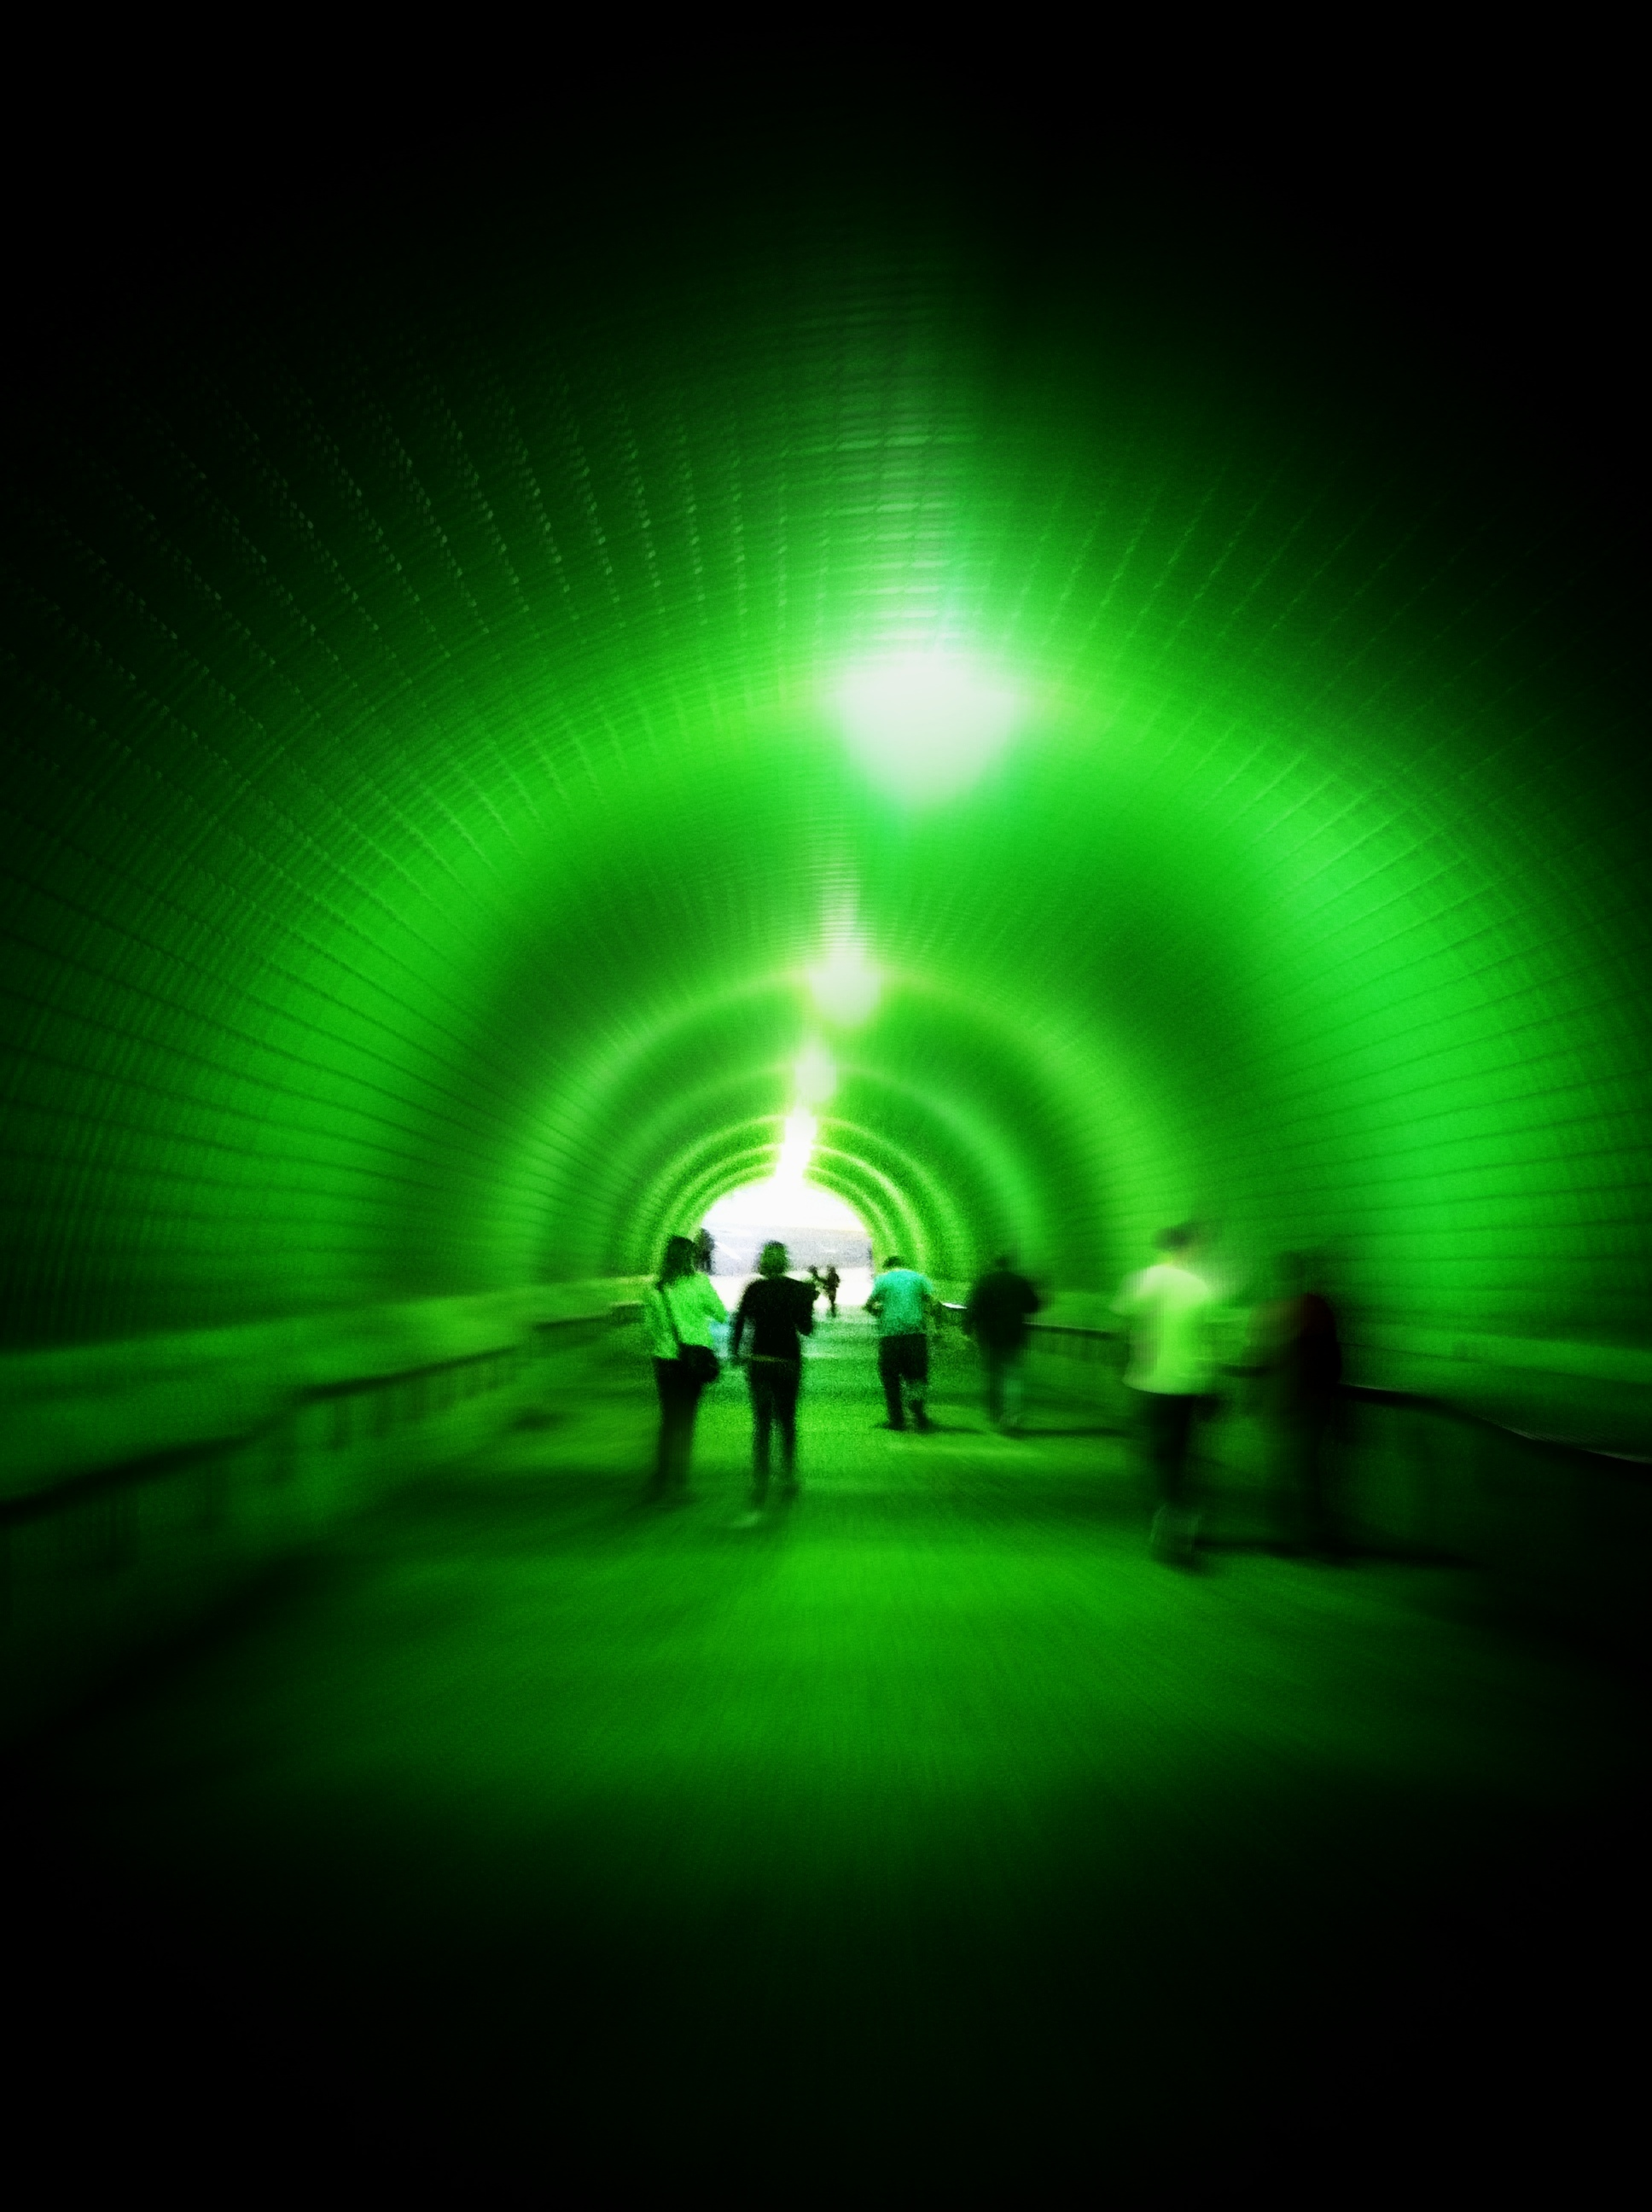 Giant Tunnel